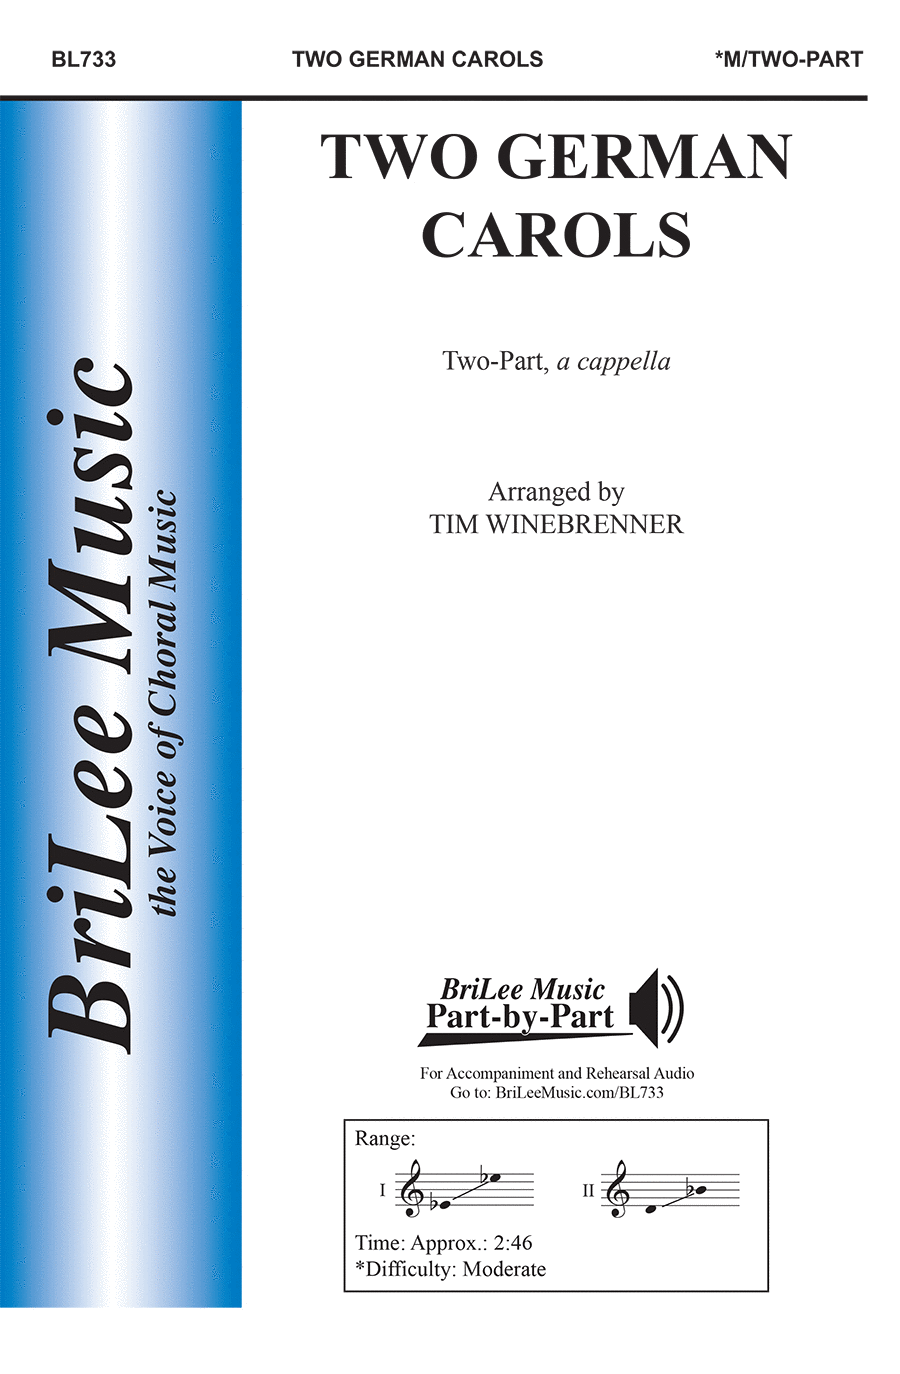 Two German Carols